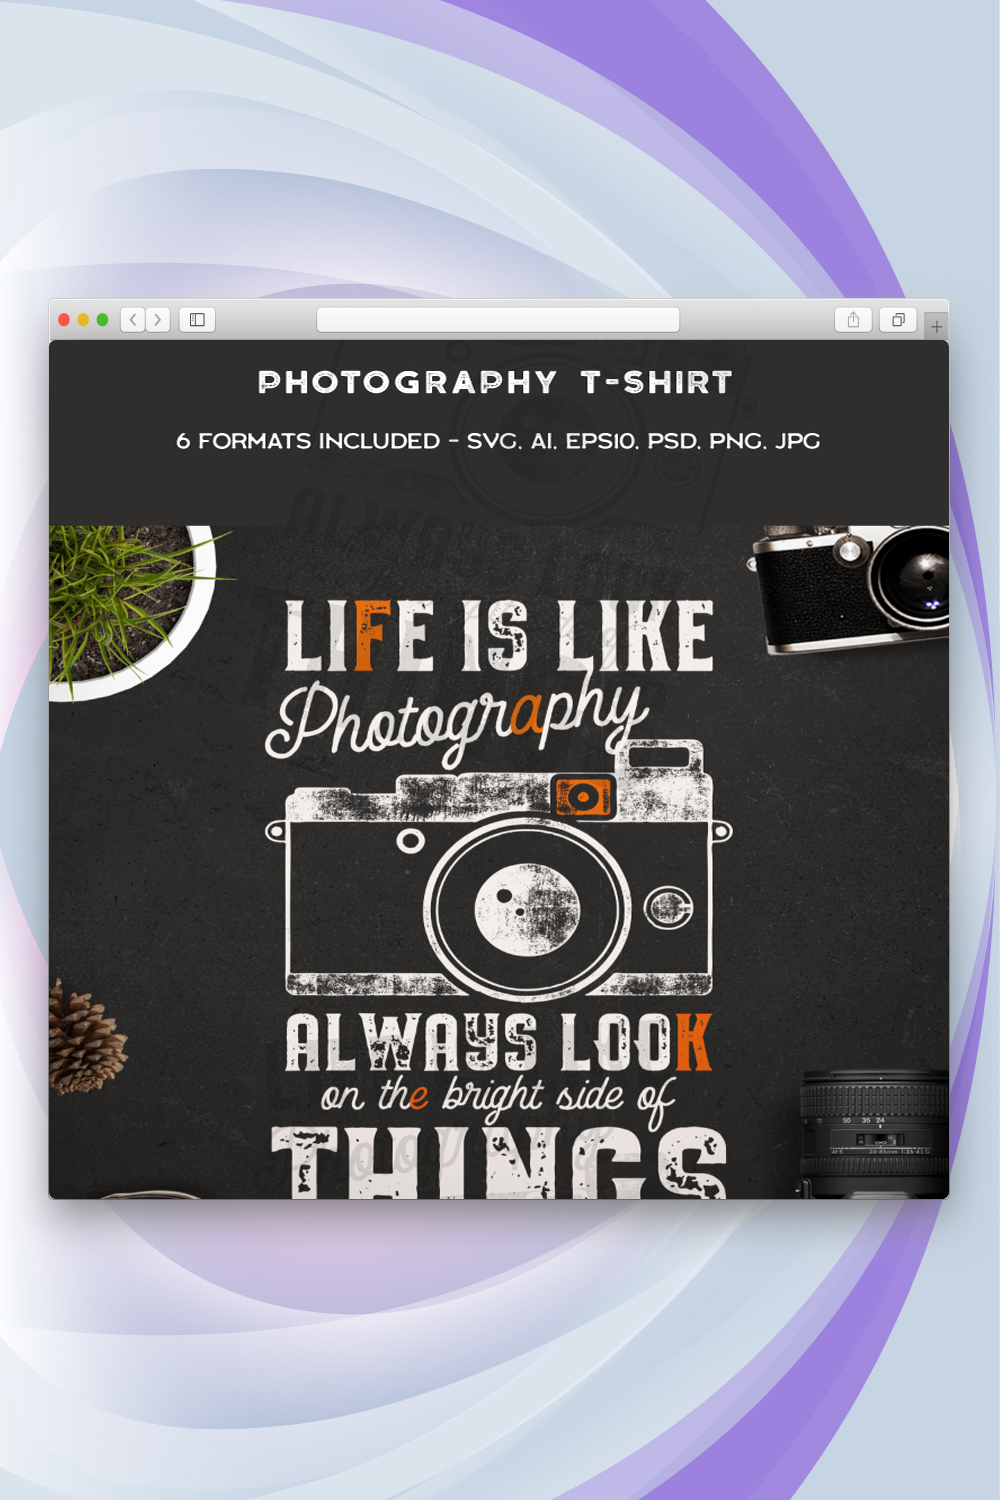 Life is Like a Photography T-shirt